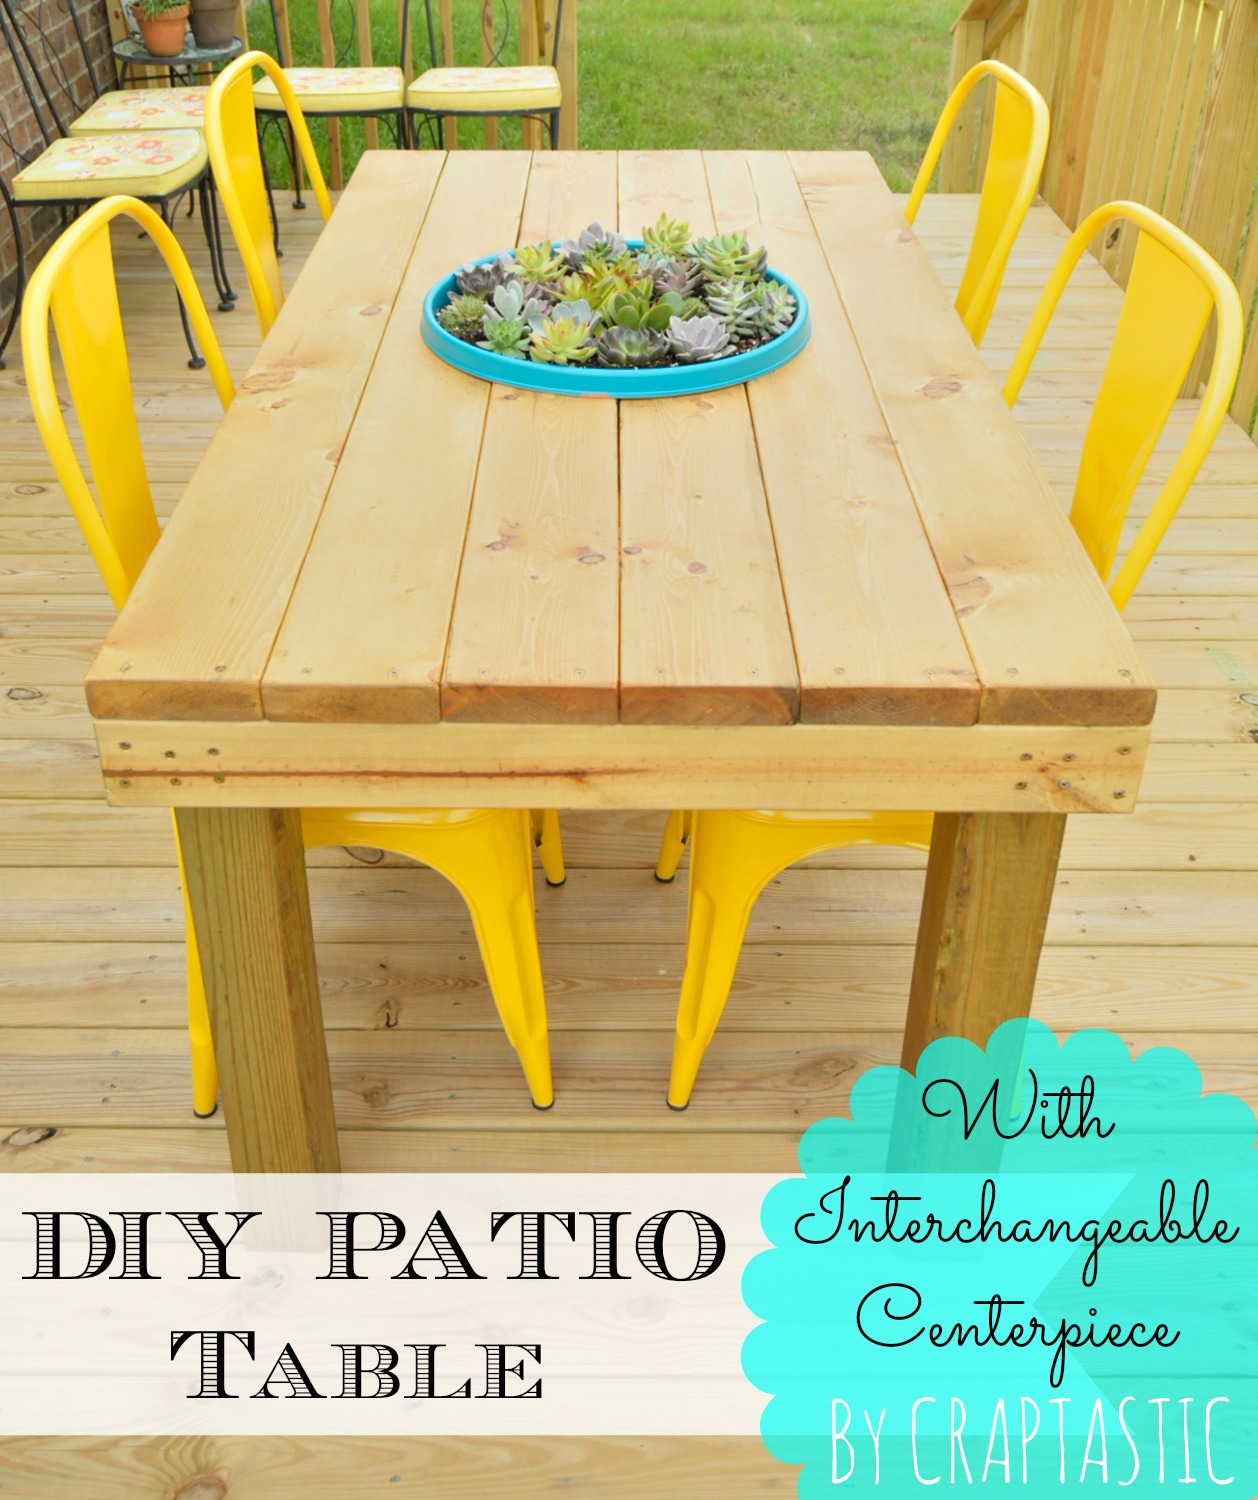 Backyard Table Diy : CRAPTASTIC DIY Patio Table With Interchangeable Centerpiece!